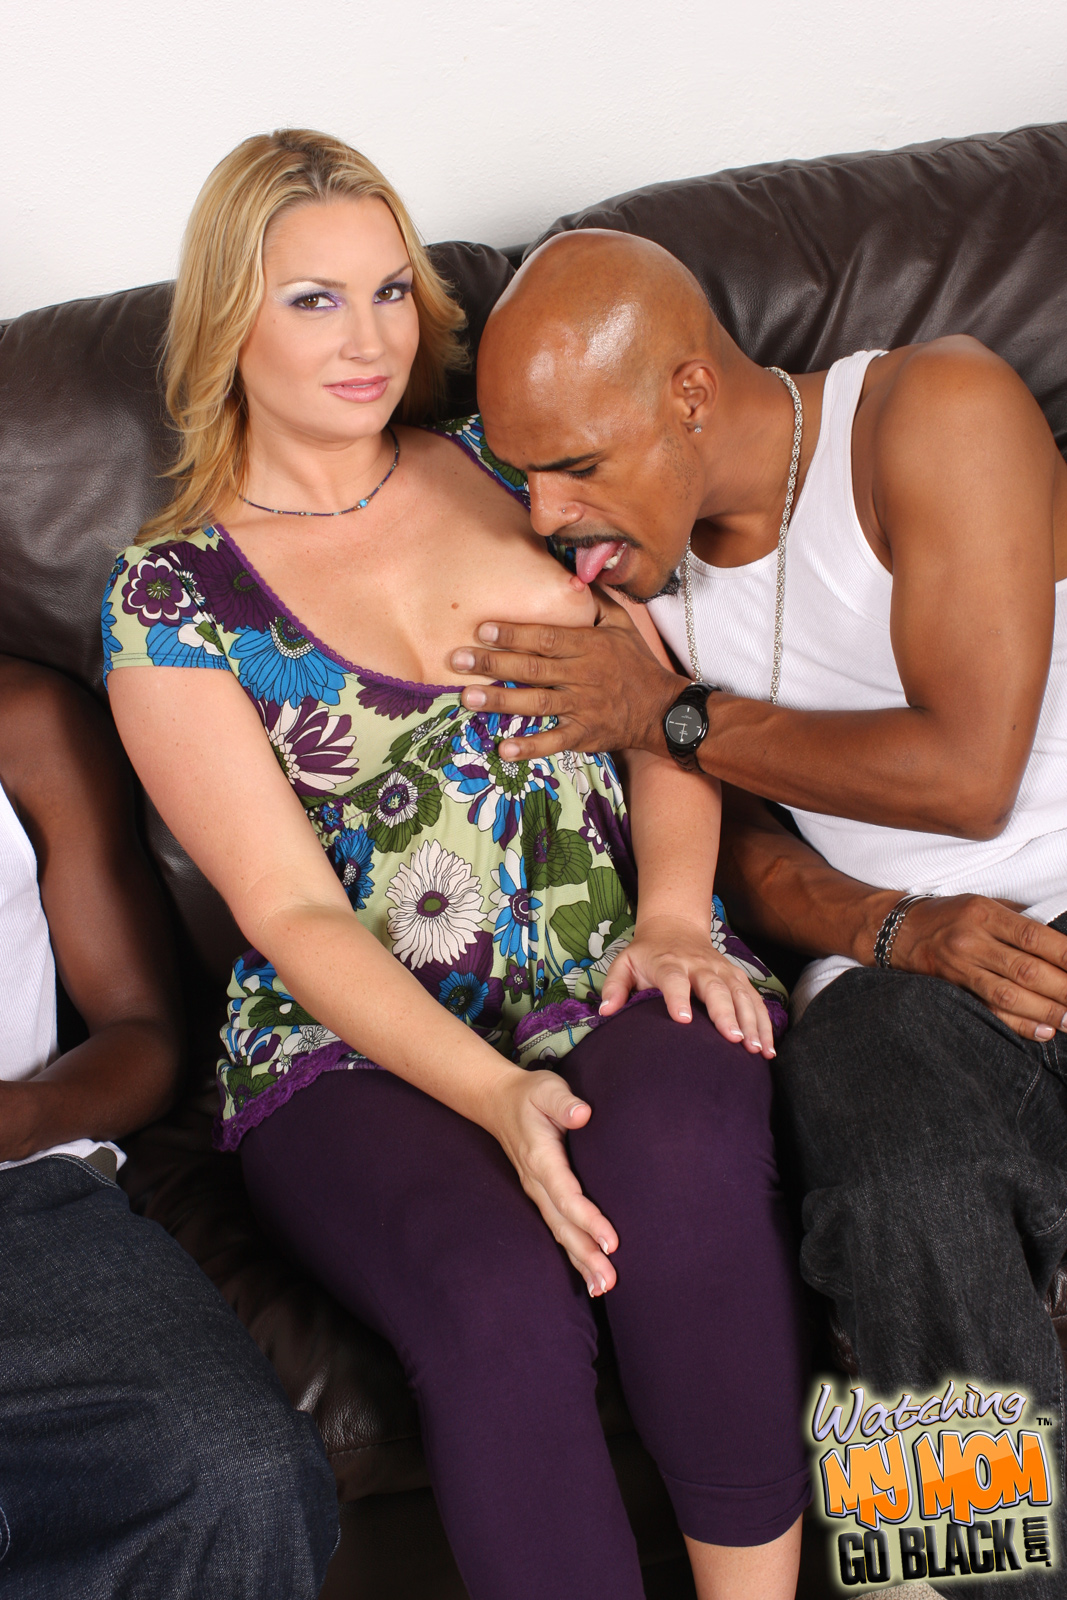 watching my mom go black flower tucci forced to watch cougar mom